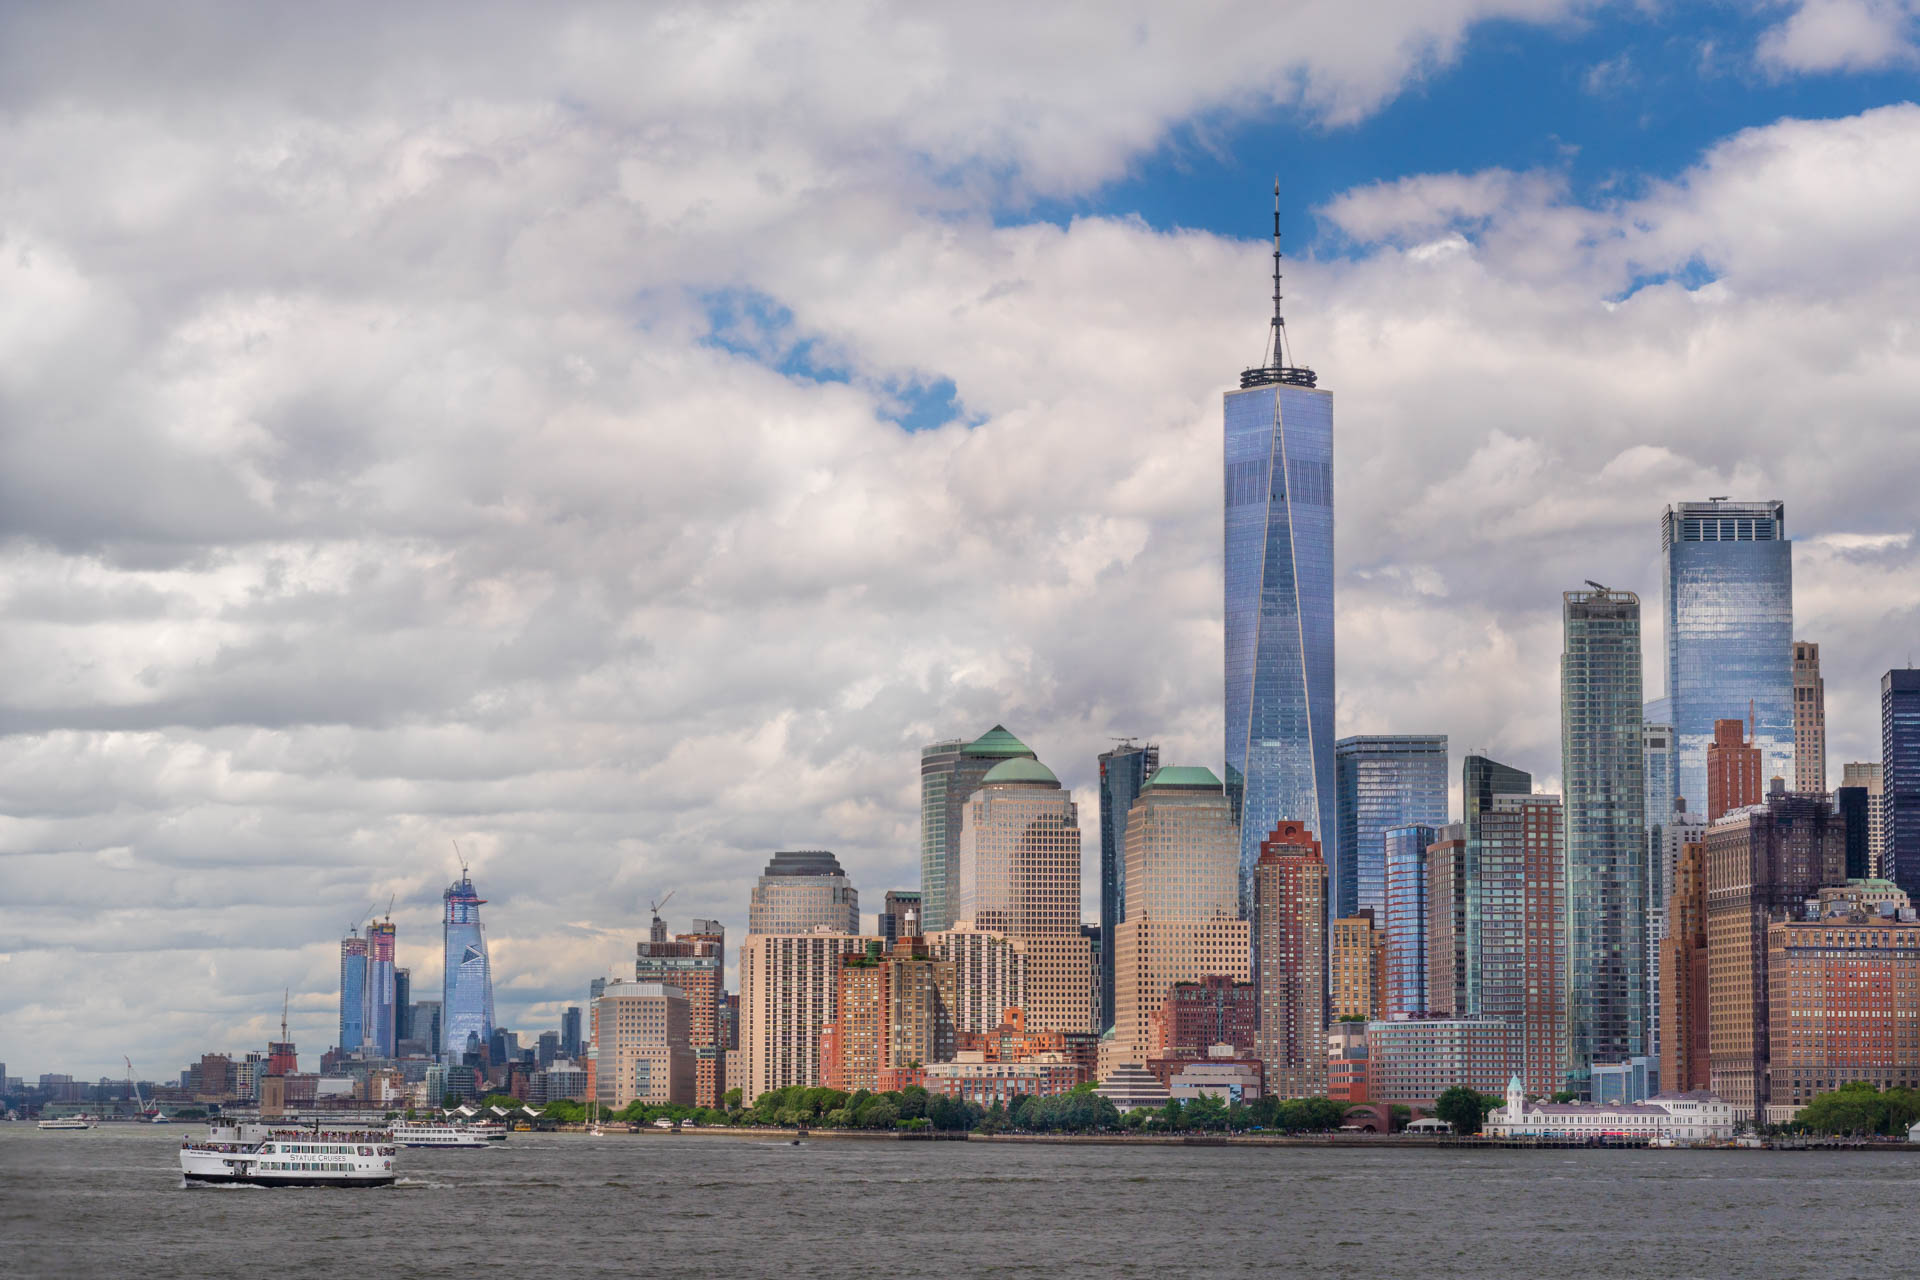 Freedom Tower - New York City | f/9 1/400sec ISO-100 55mm